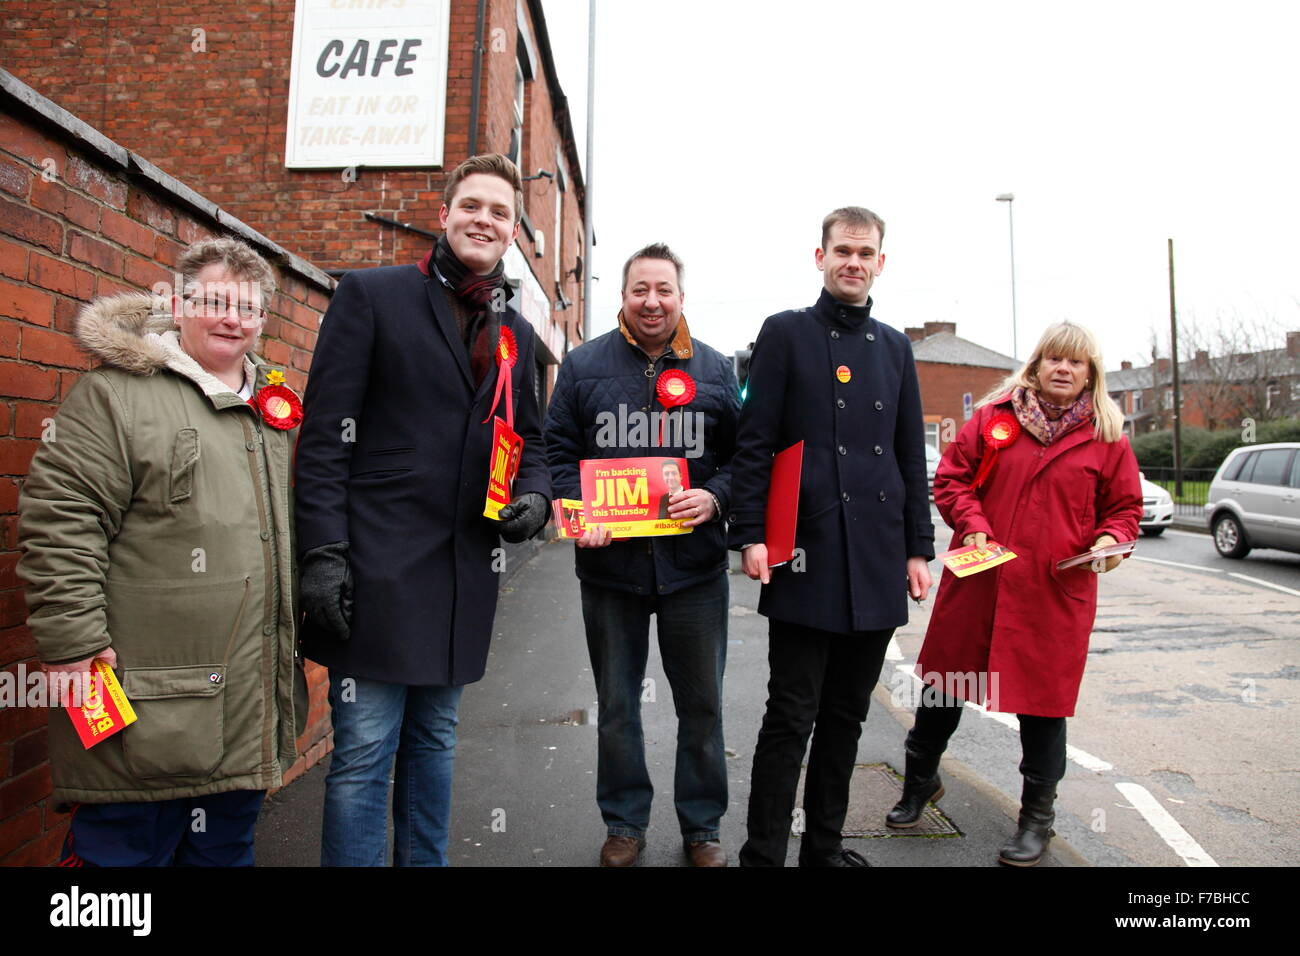 Canvassers for The Labour Party take a break from working door to door in Oldham in the run up to the parliamentary by-election in the Oldham West ...  sc 1 st  Alamy & Oldham UK 28th November 2015. Canvassers for The Labour Party take ...